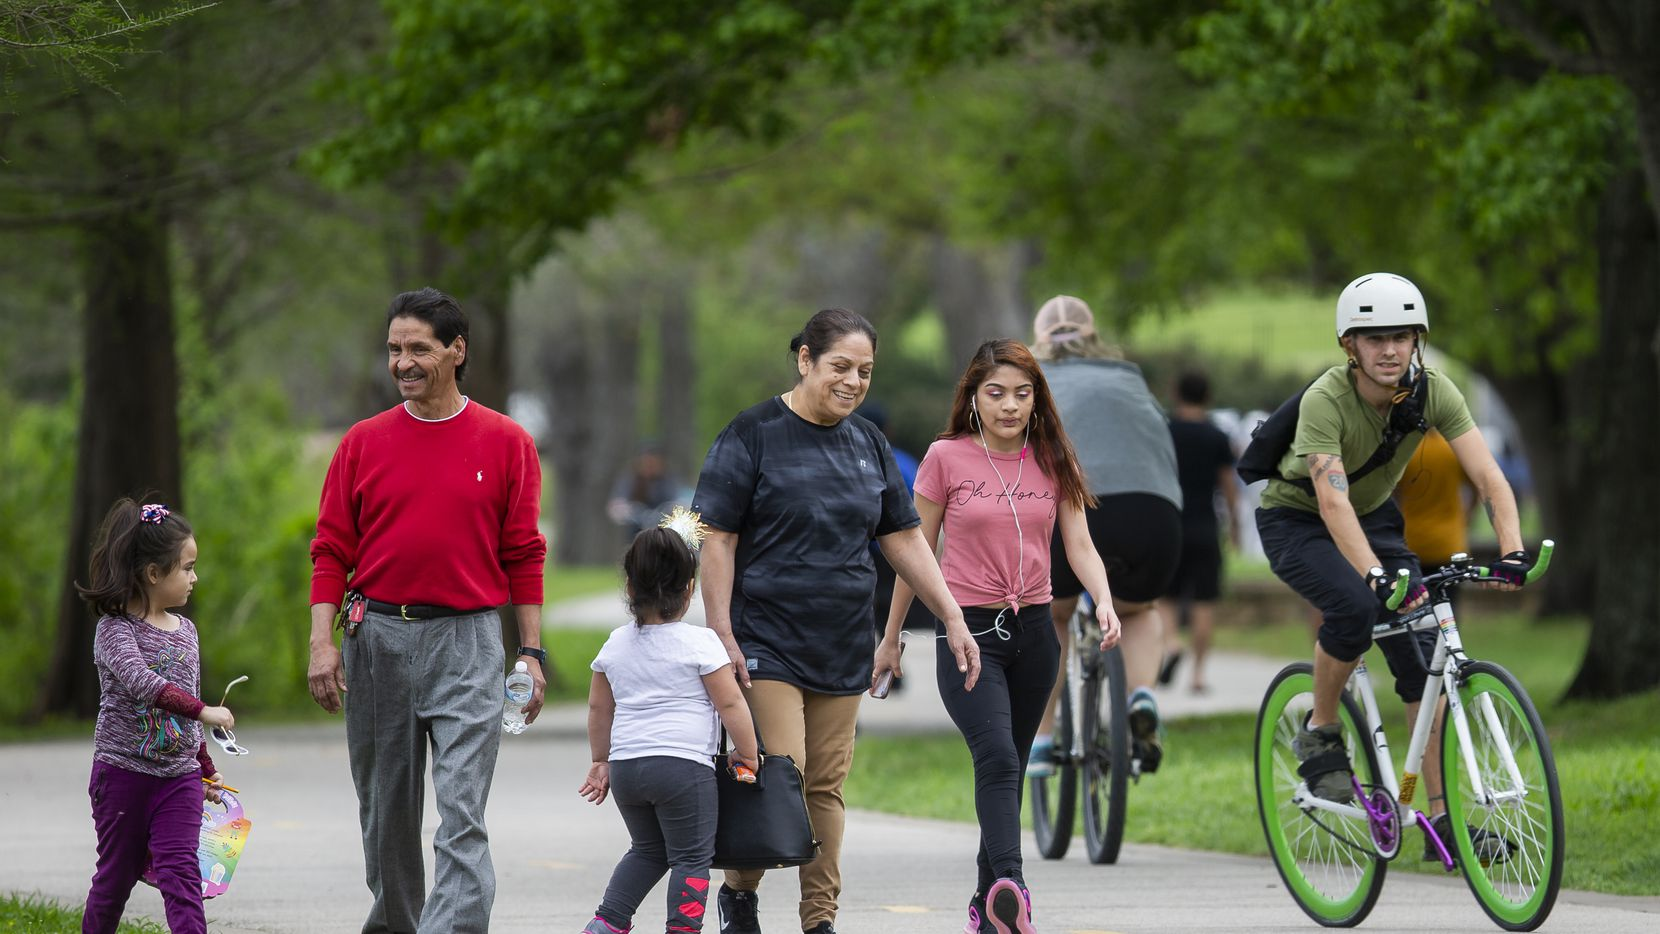 People ride bikes and walk at White Rock Lake on March 29, 2020 in Dallas.